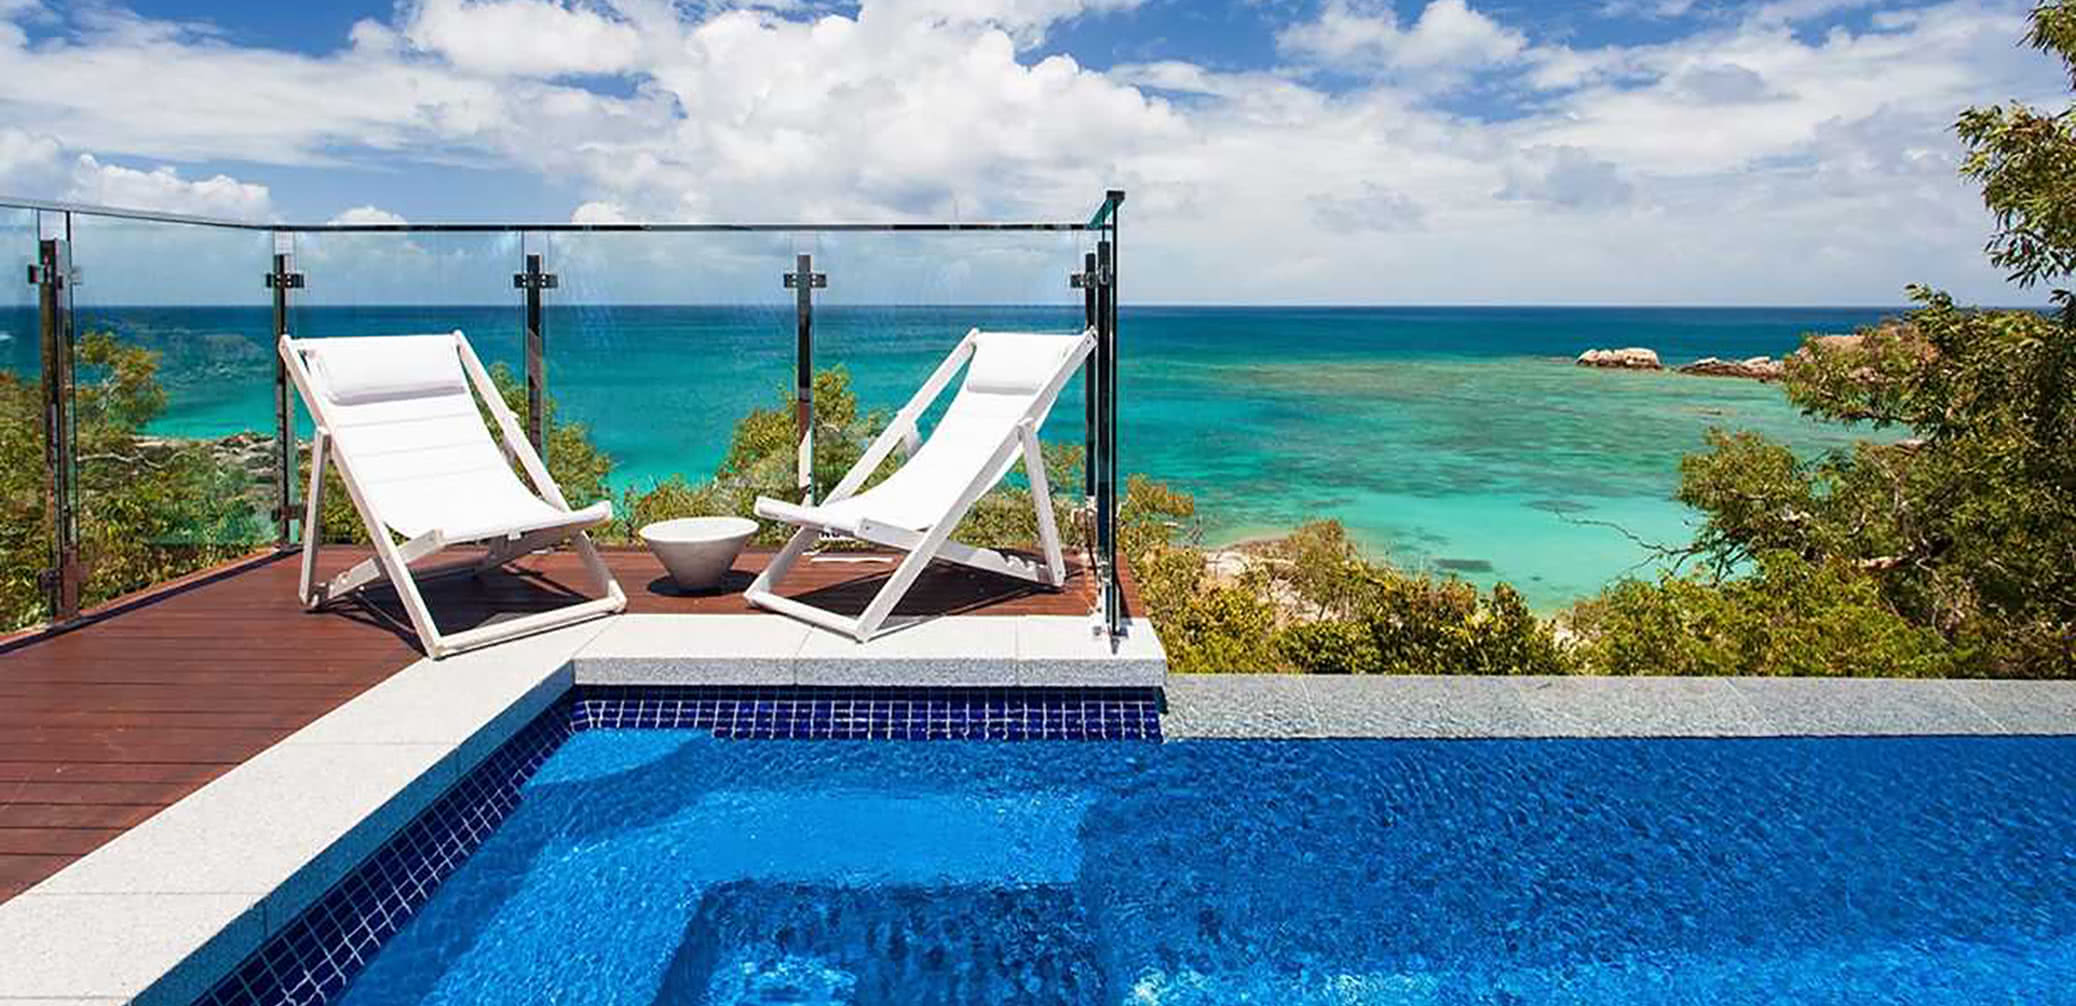 Top 10 Best Private Island Resorts In The World